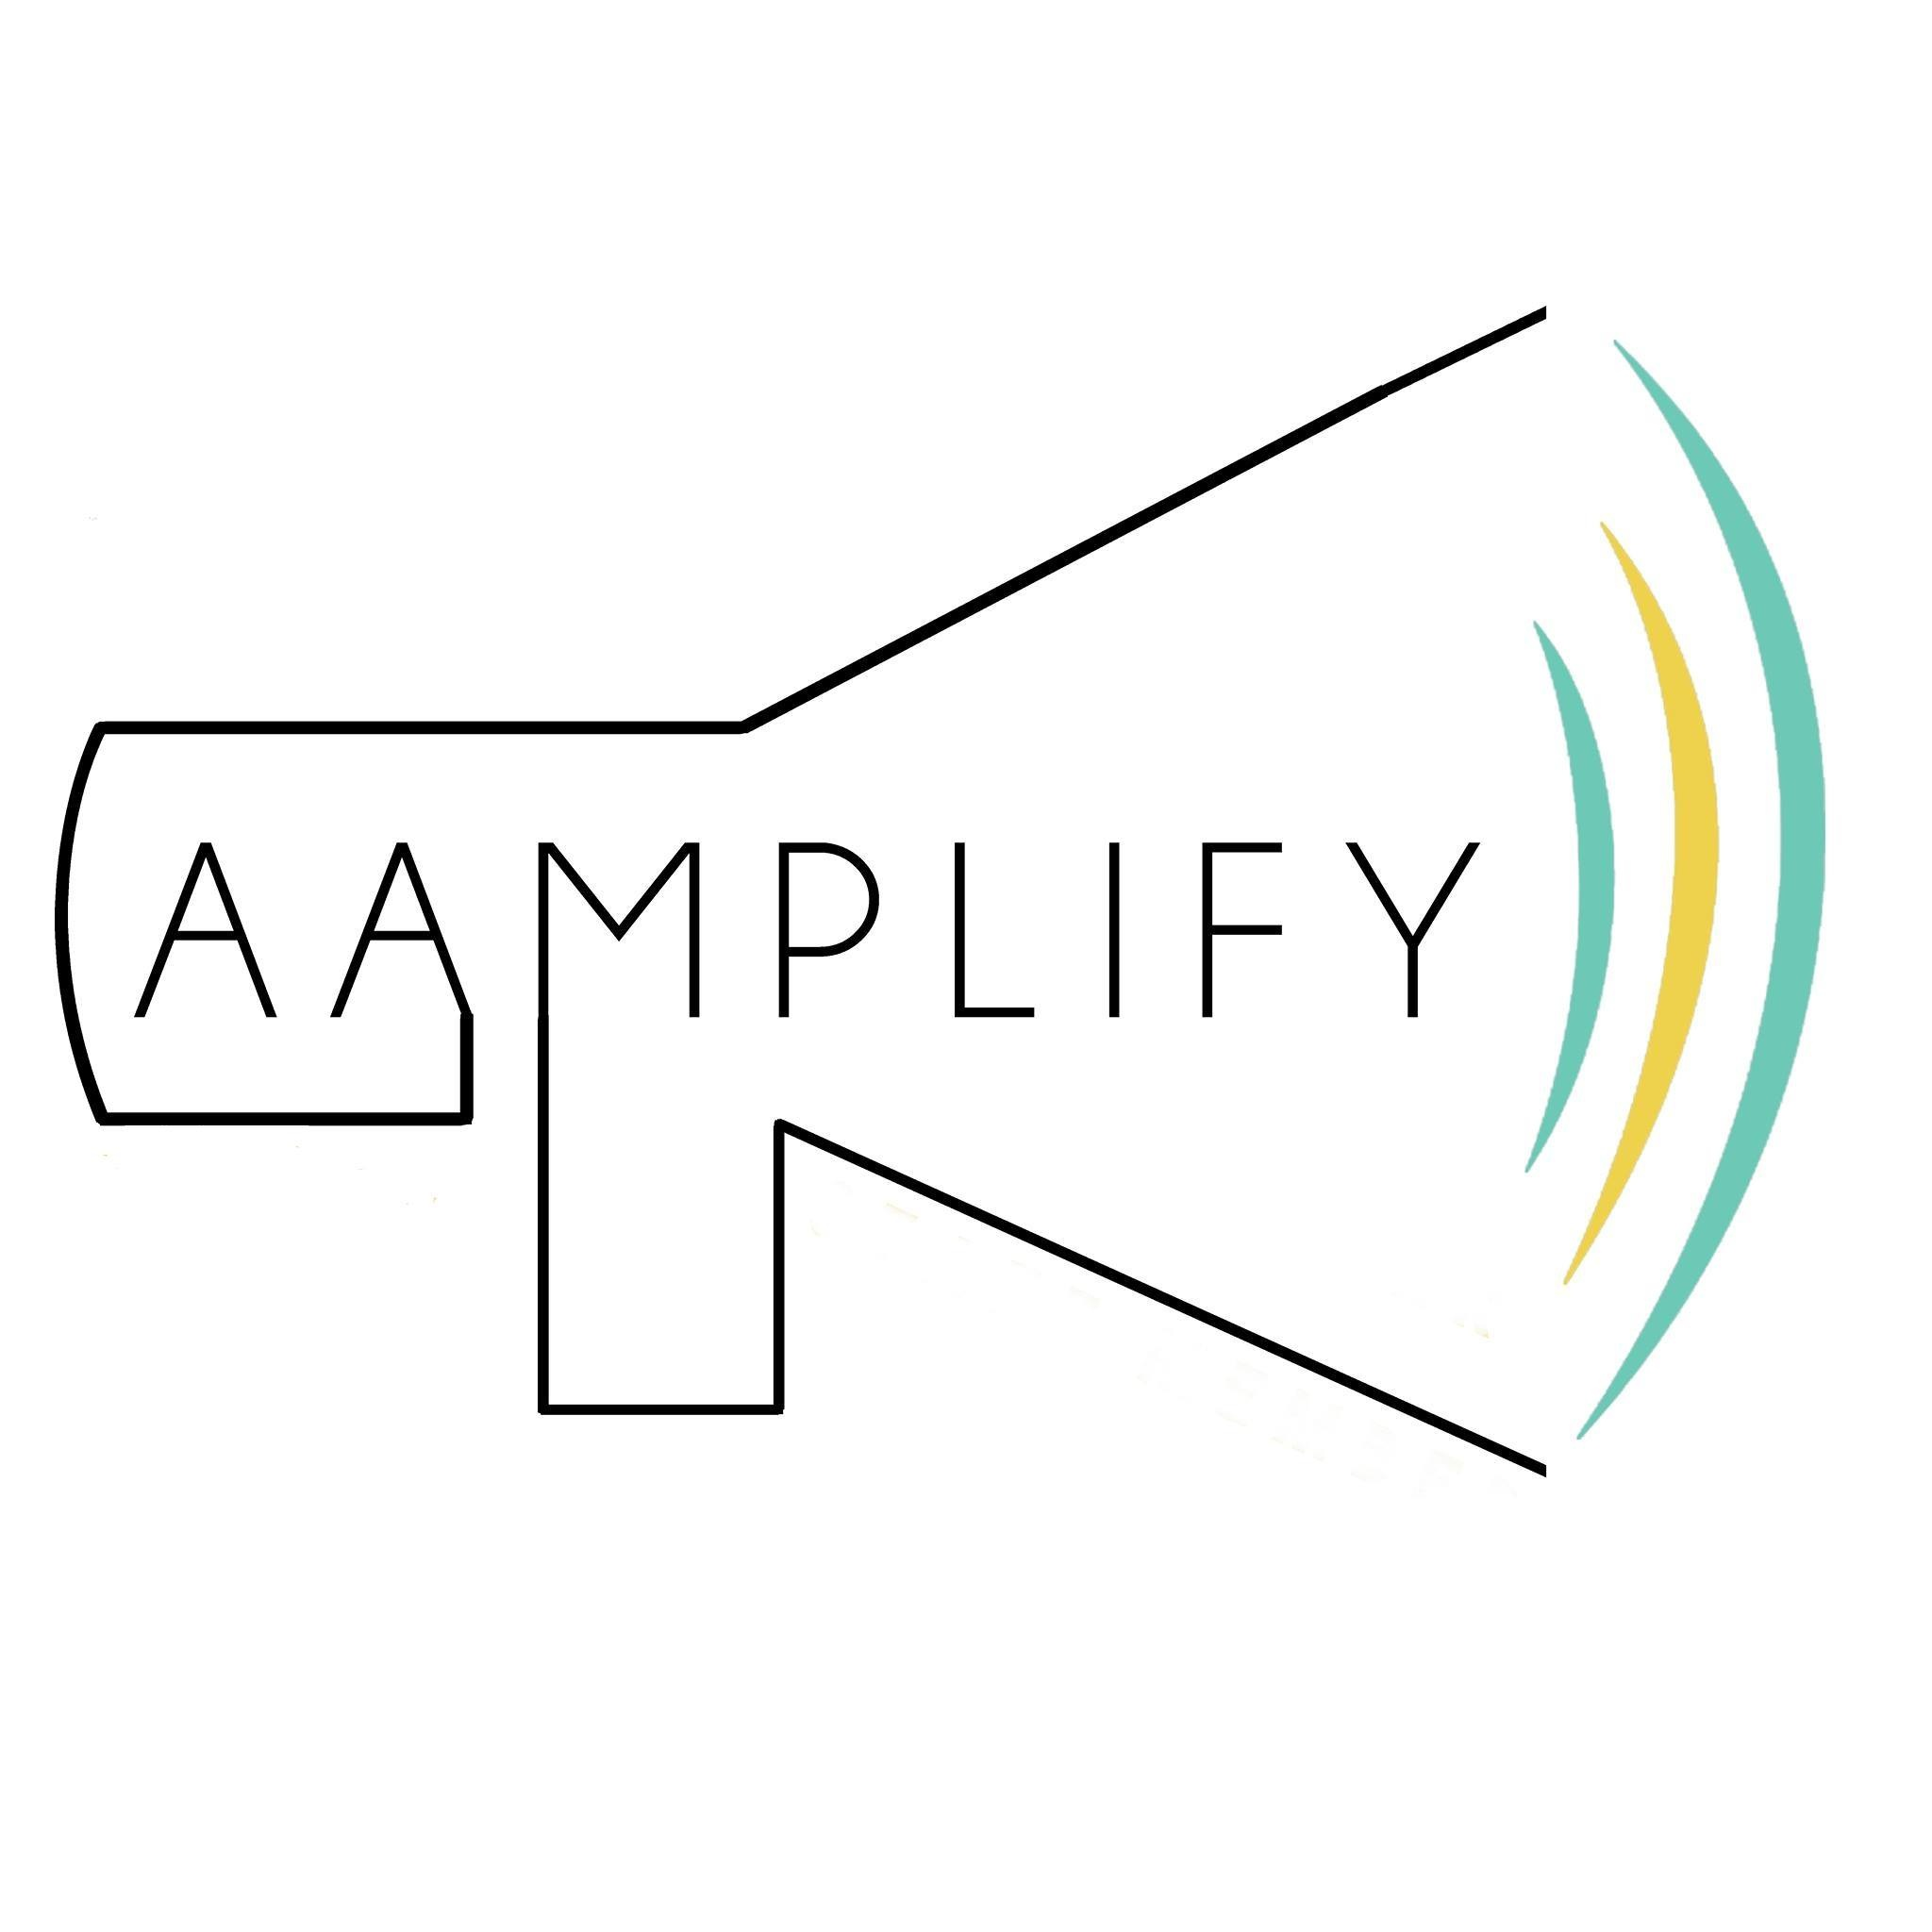 AAMPLIFY - is an education and 501(c)(3) organization that empowers underserved Asian Pacific American youth to become social justice leaders. By helping them recognize their leadership potential and ability to change the world, we give a voice to the needs of our community.